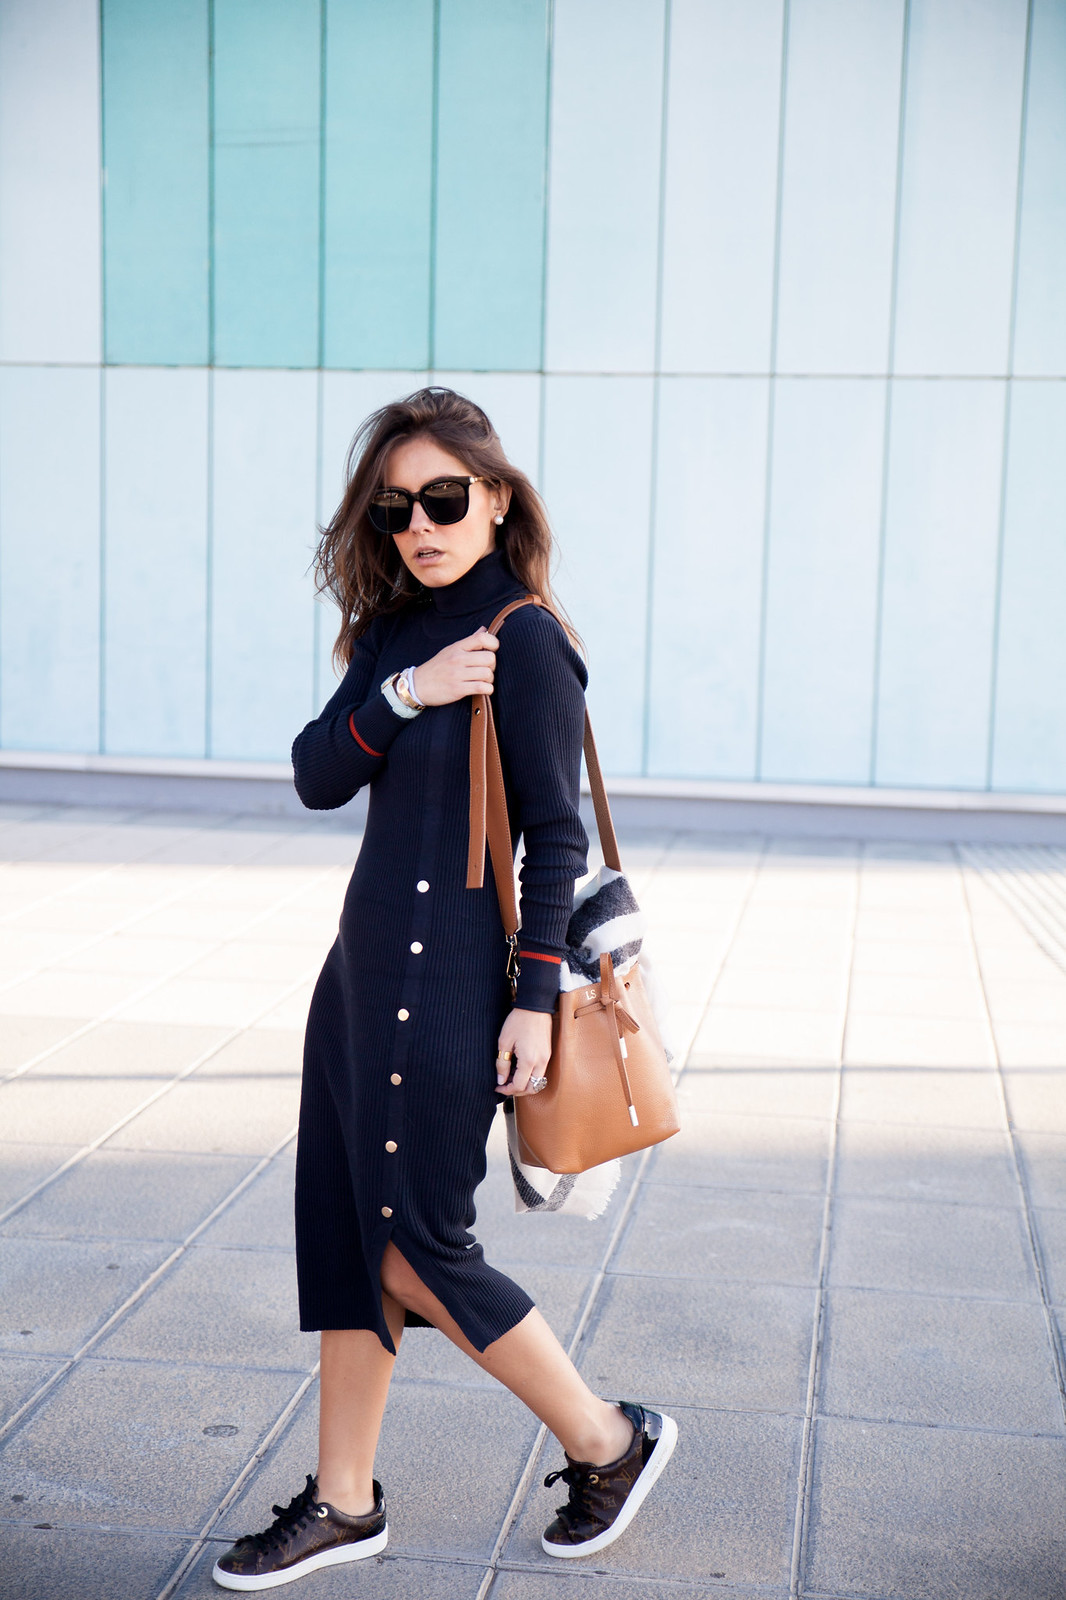 the guest girl theguestgirl influencer moda fashion content creator barcelona spain vila clothes dress blue